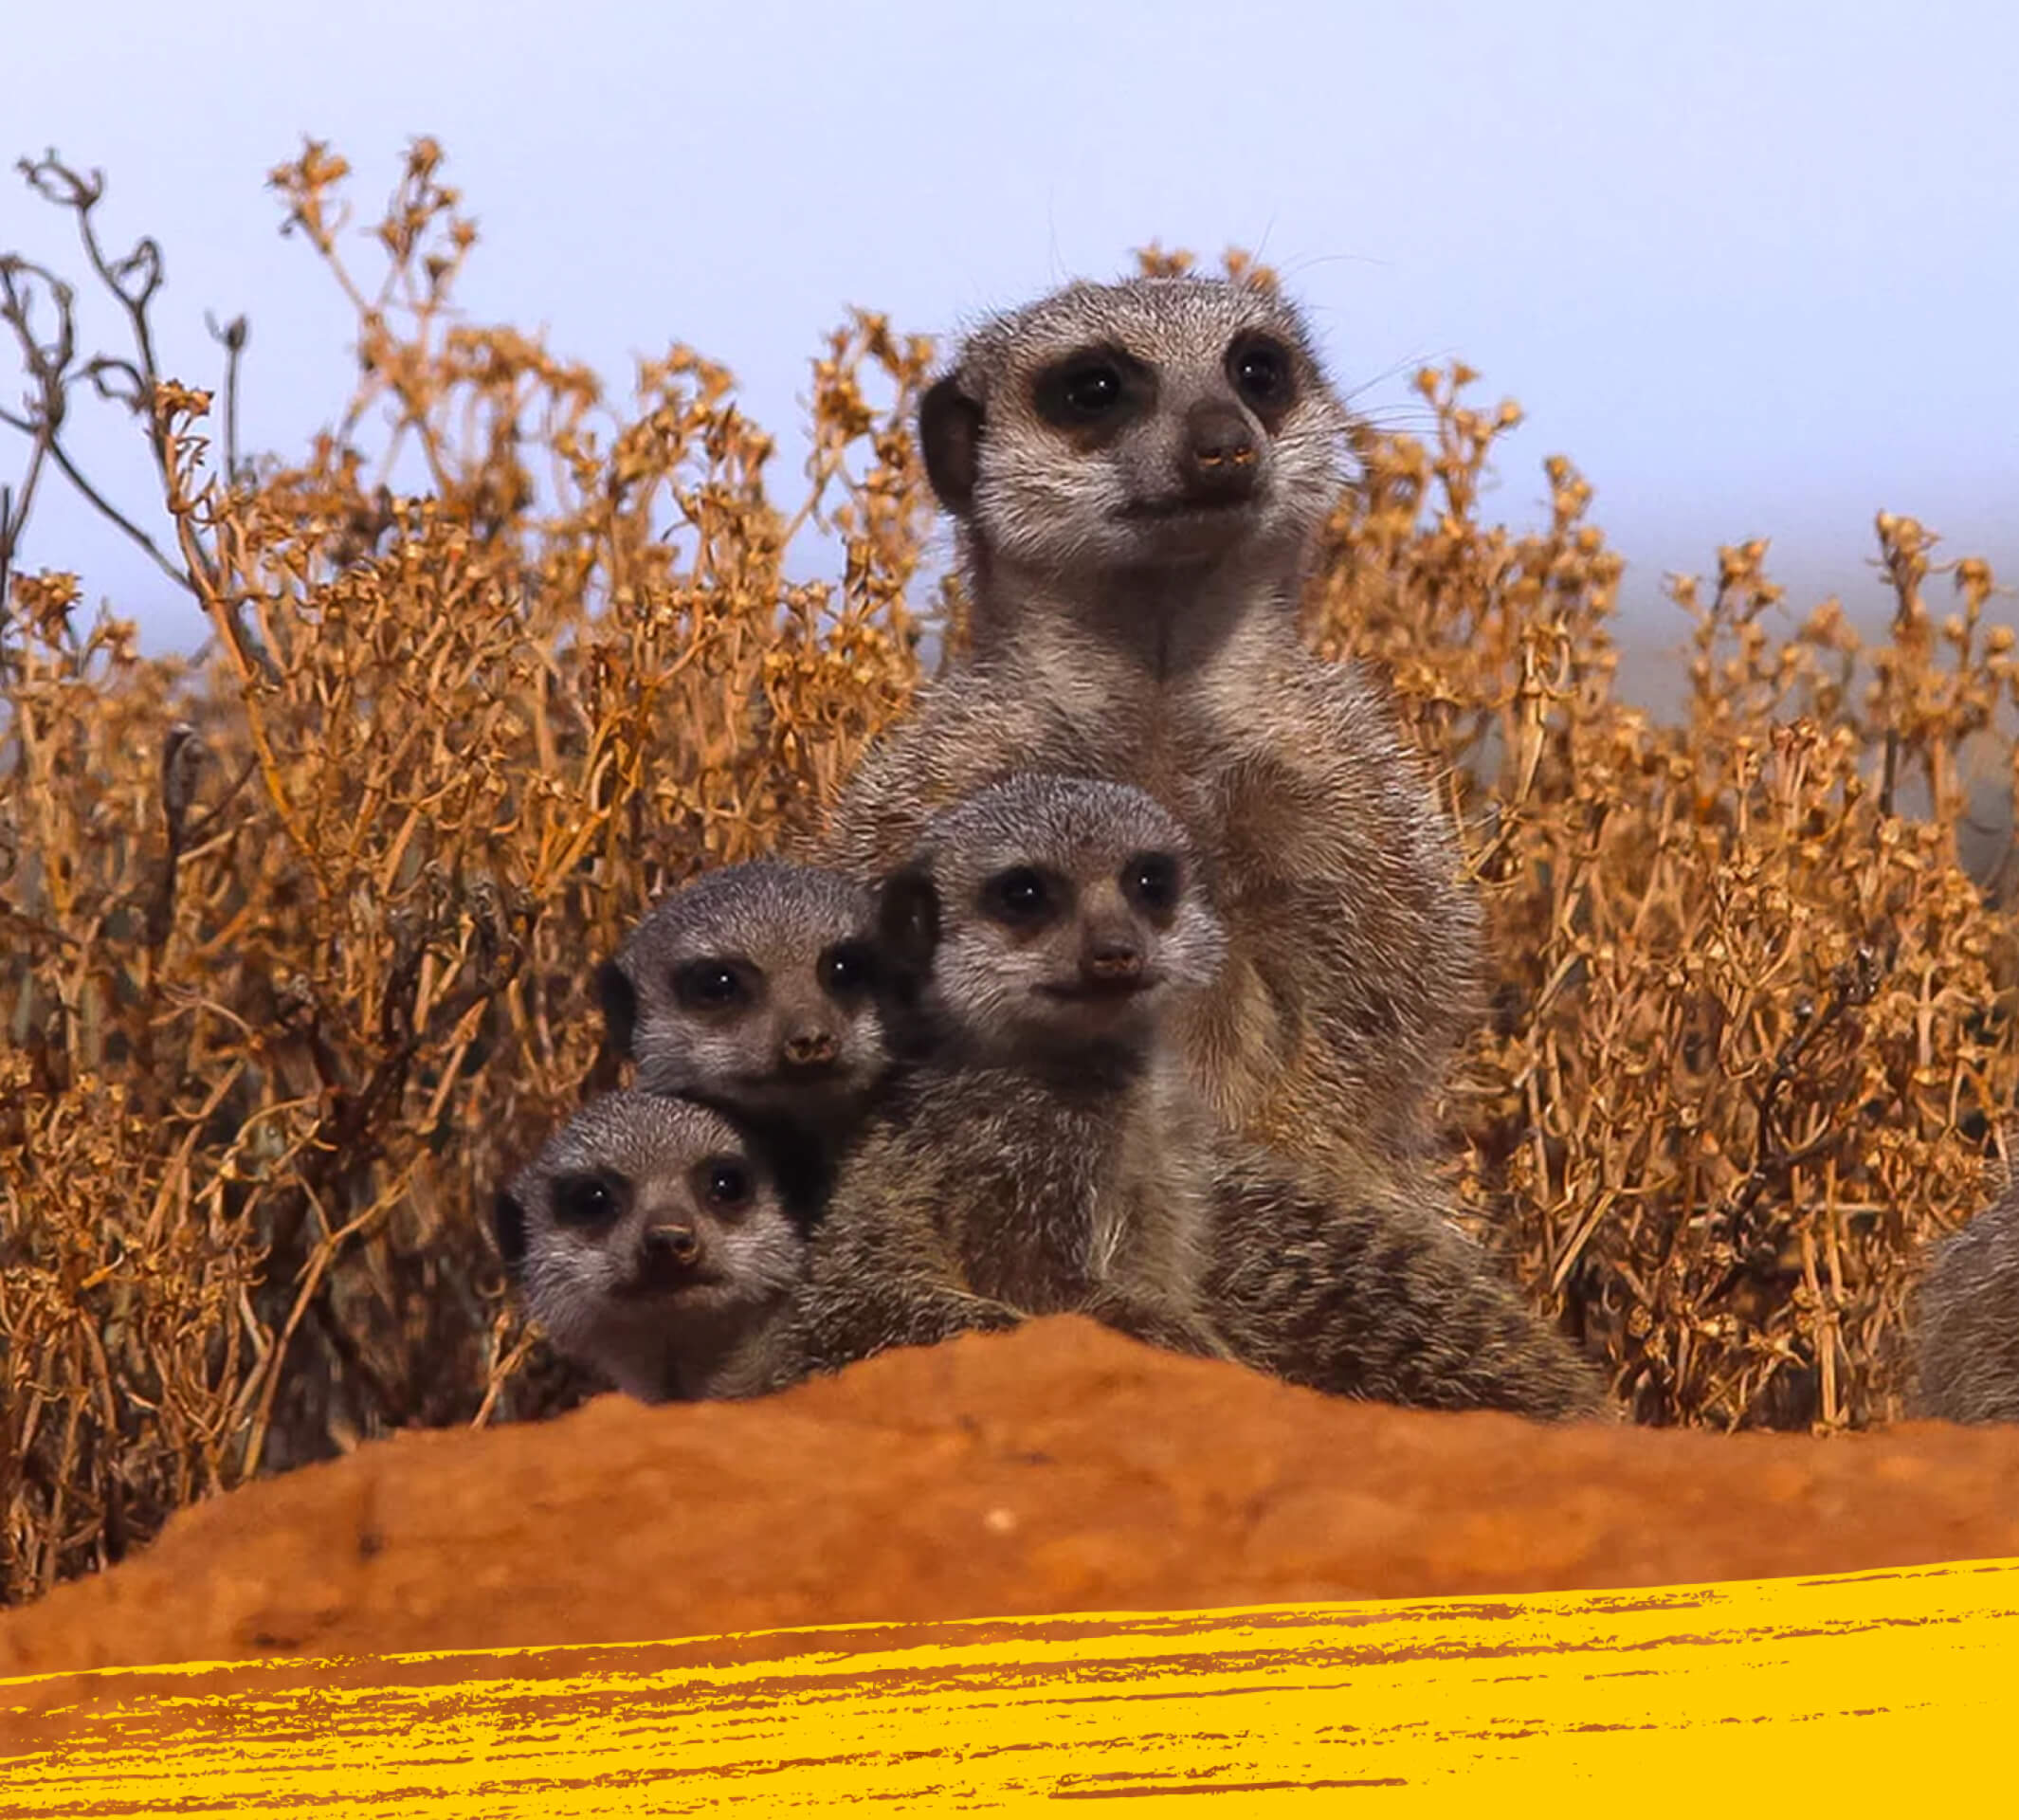 Meerkat and a group baby meerkats on a red hump